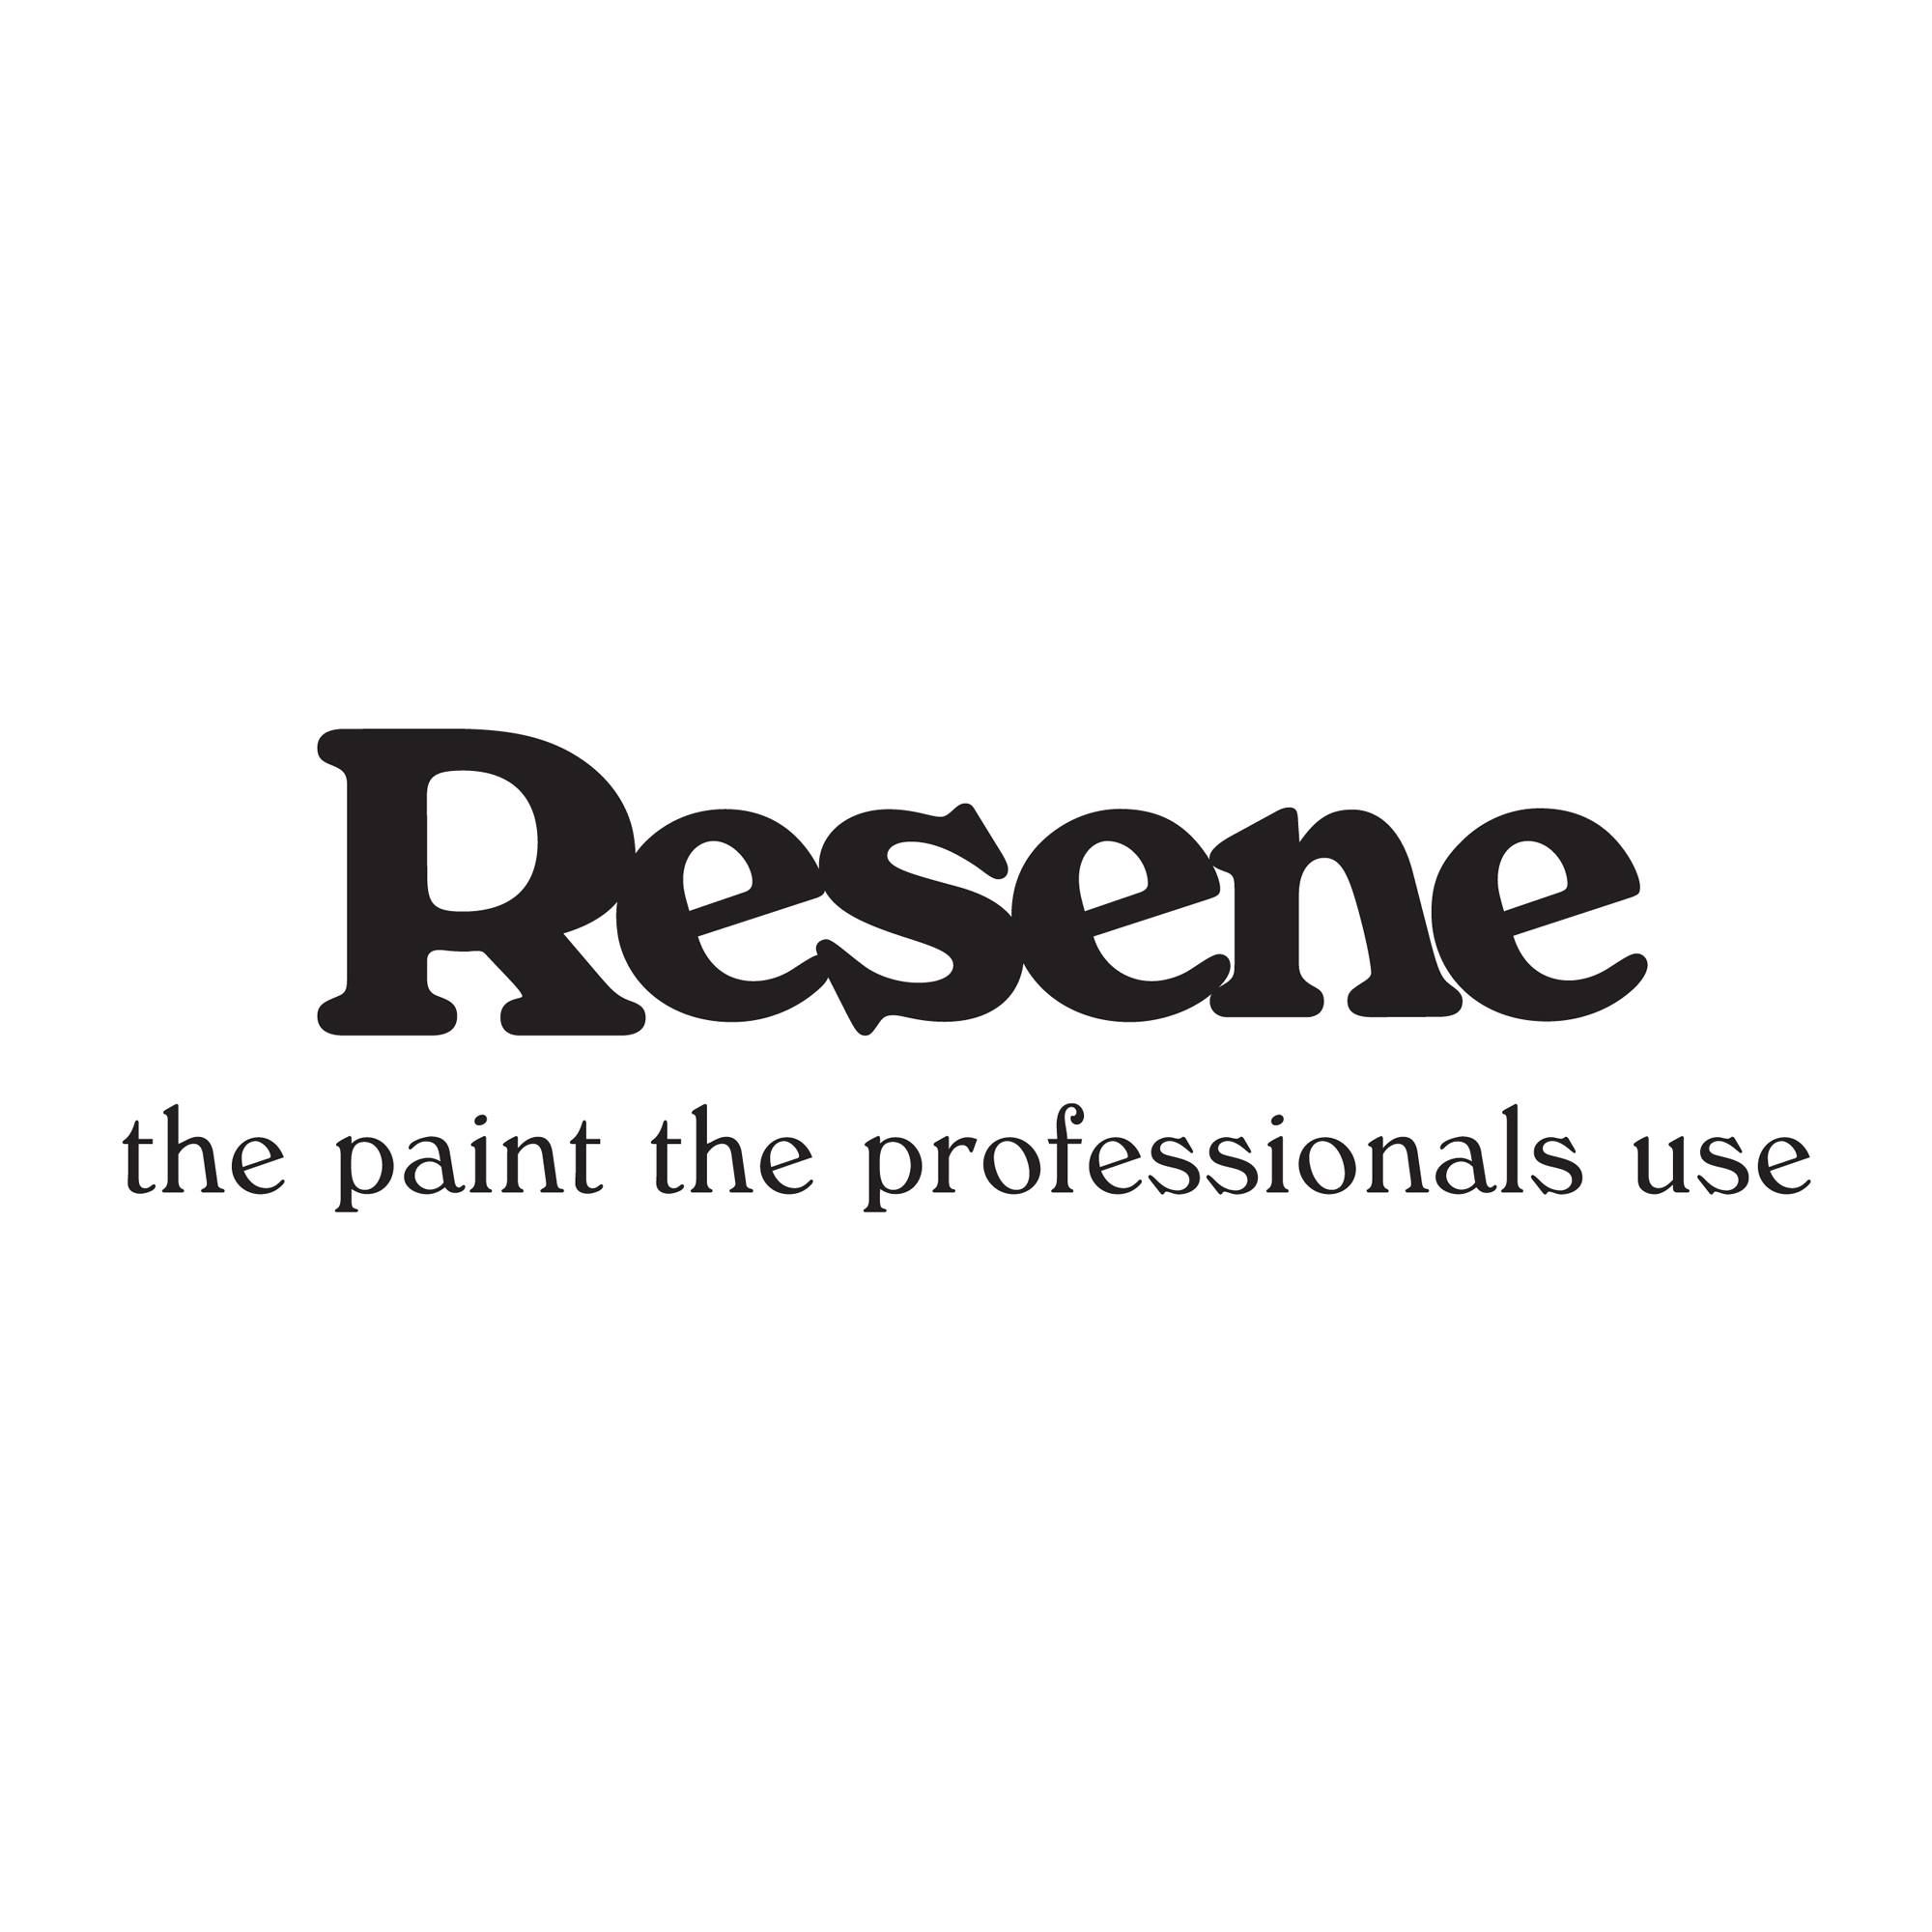 Paint, Paint, Paint - Most well-known as the brand of paint the professionals use, Resene retail curtains and wall-coverings along with their 'total colour system' through their 120+ ColorShops and retailers across New Zealand. Key to Resene's reputation is its commitment to excellence and quality.Resene is the only paint I use. I love that their colour range is seemingly limitless and readily available nationwide.